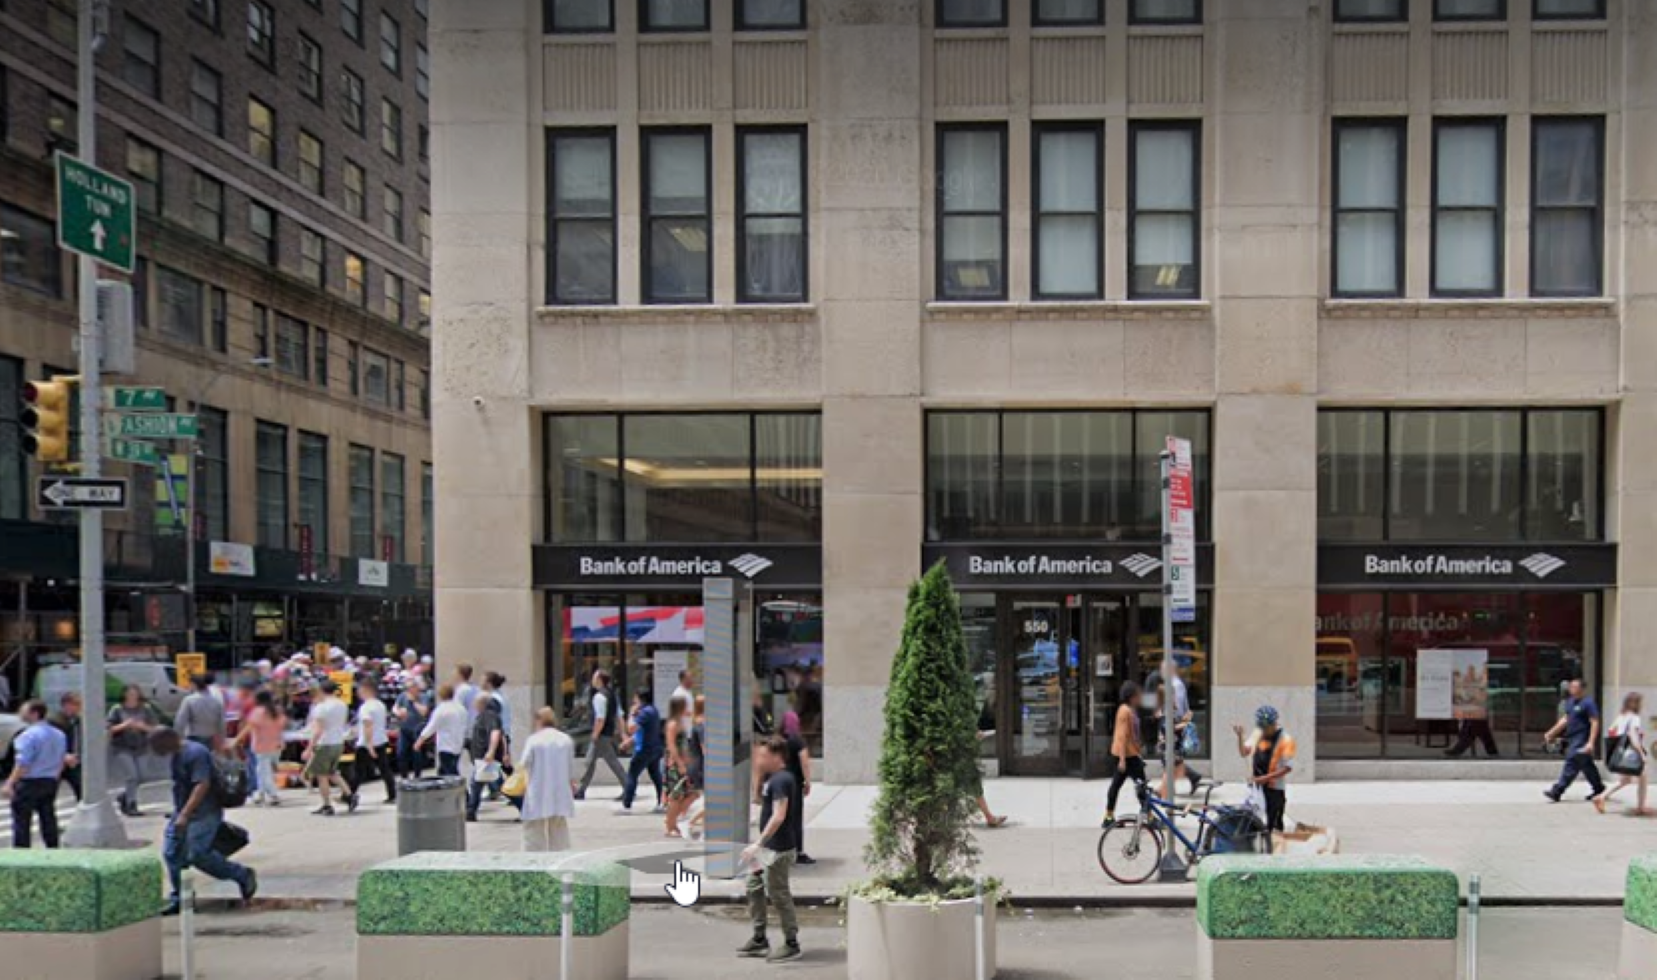 Bank of America financial center with walk-up ATM   550 7th Ave, New York, NY 10018